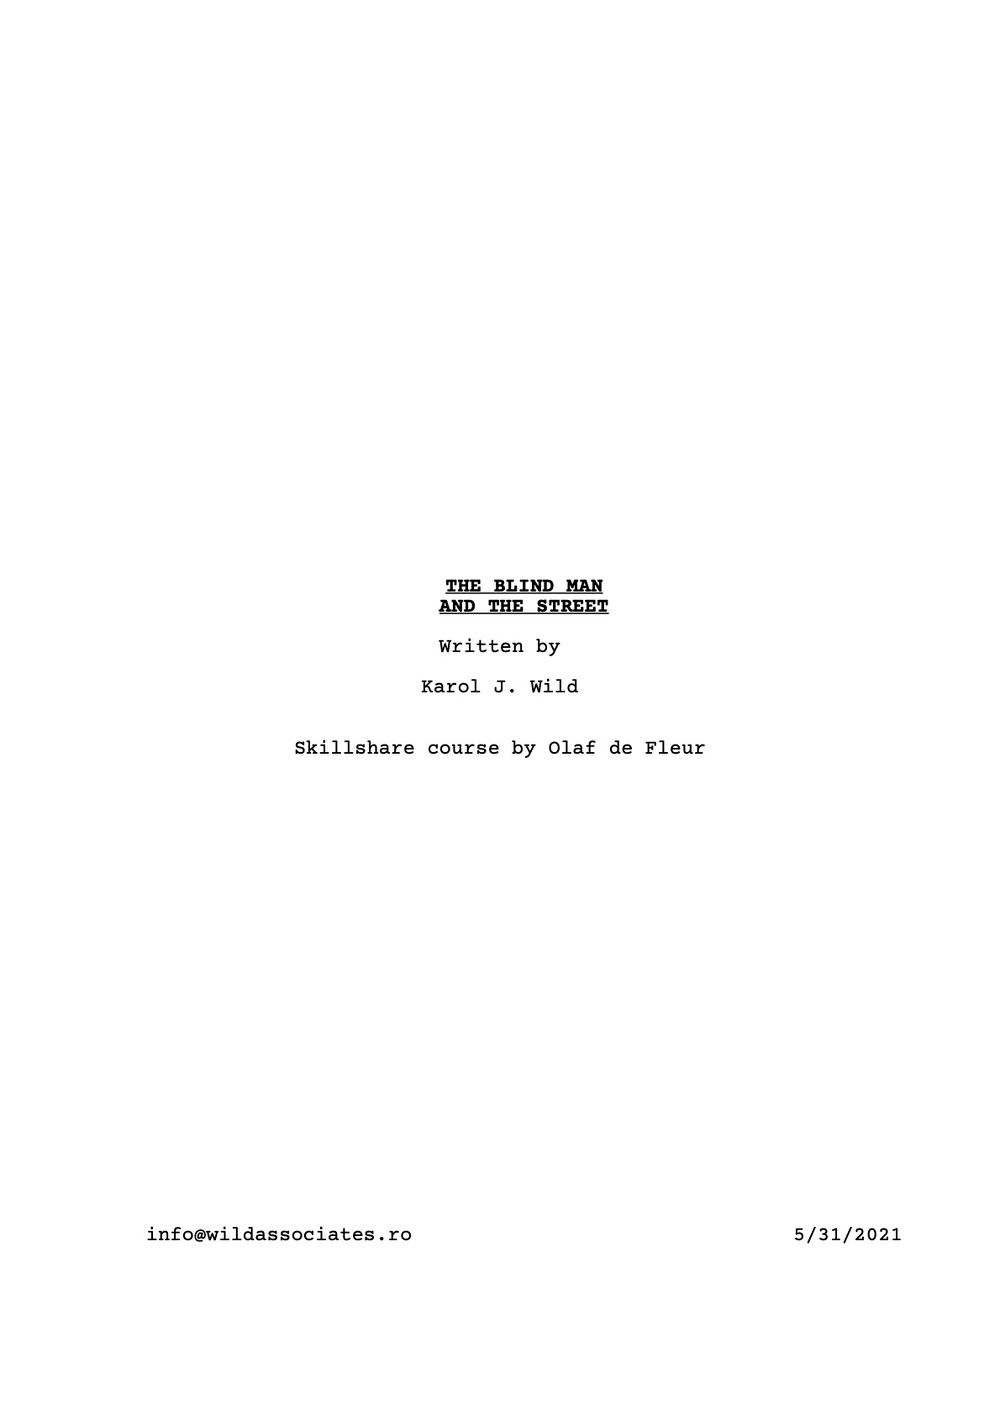 SCREENPLAY DRAFT - image 1 - student project